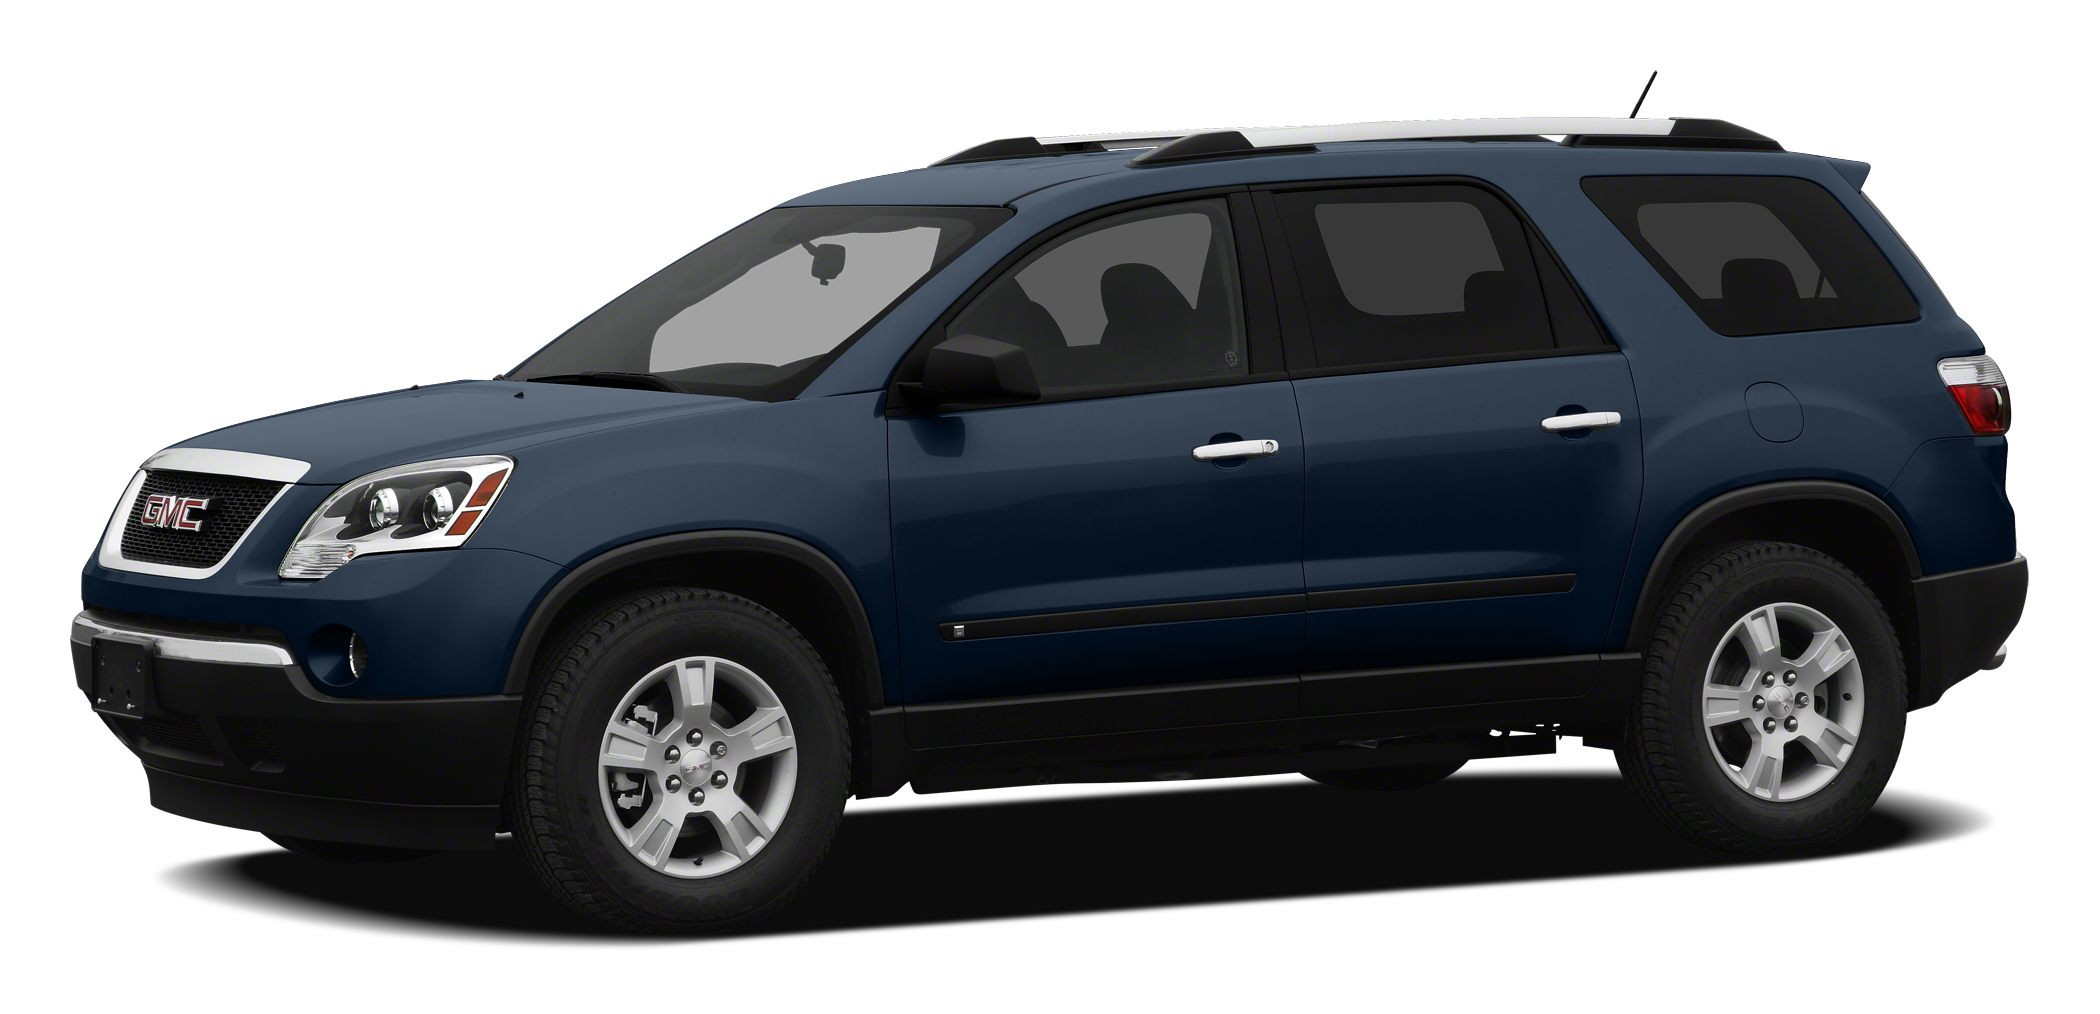 2012 GMC Acadia SLT-1 CARFAX 1-Owner Excellent Condition EPA 24 MPG Hwy17 MPG City Moonroof H